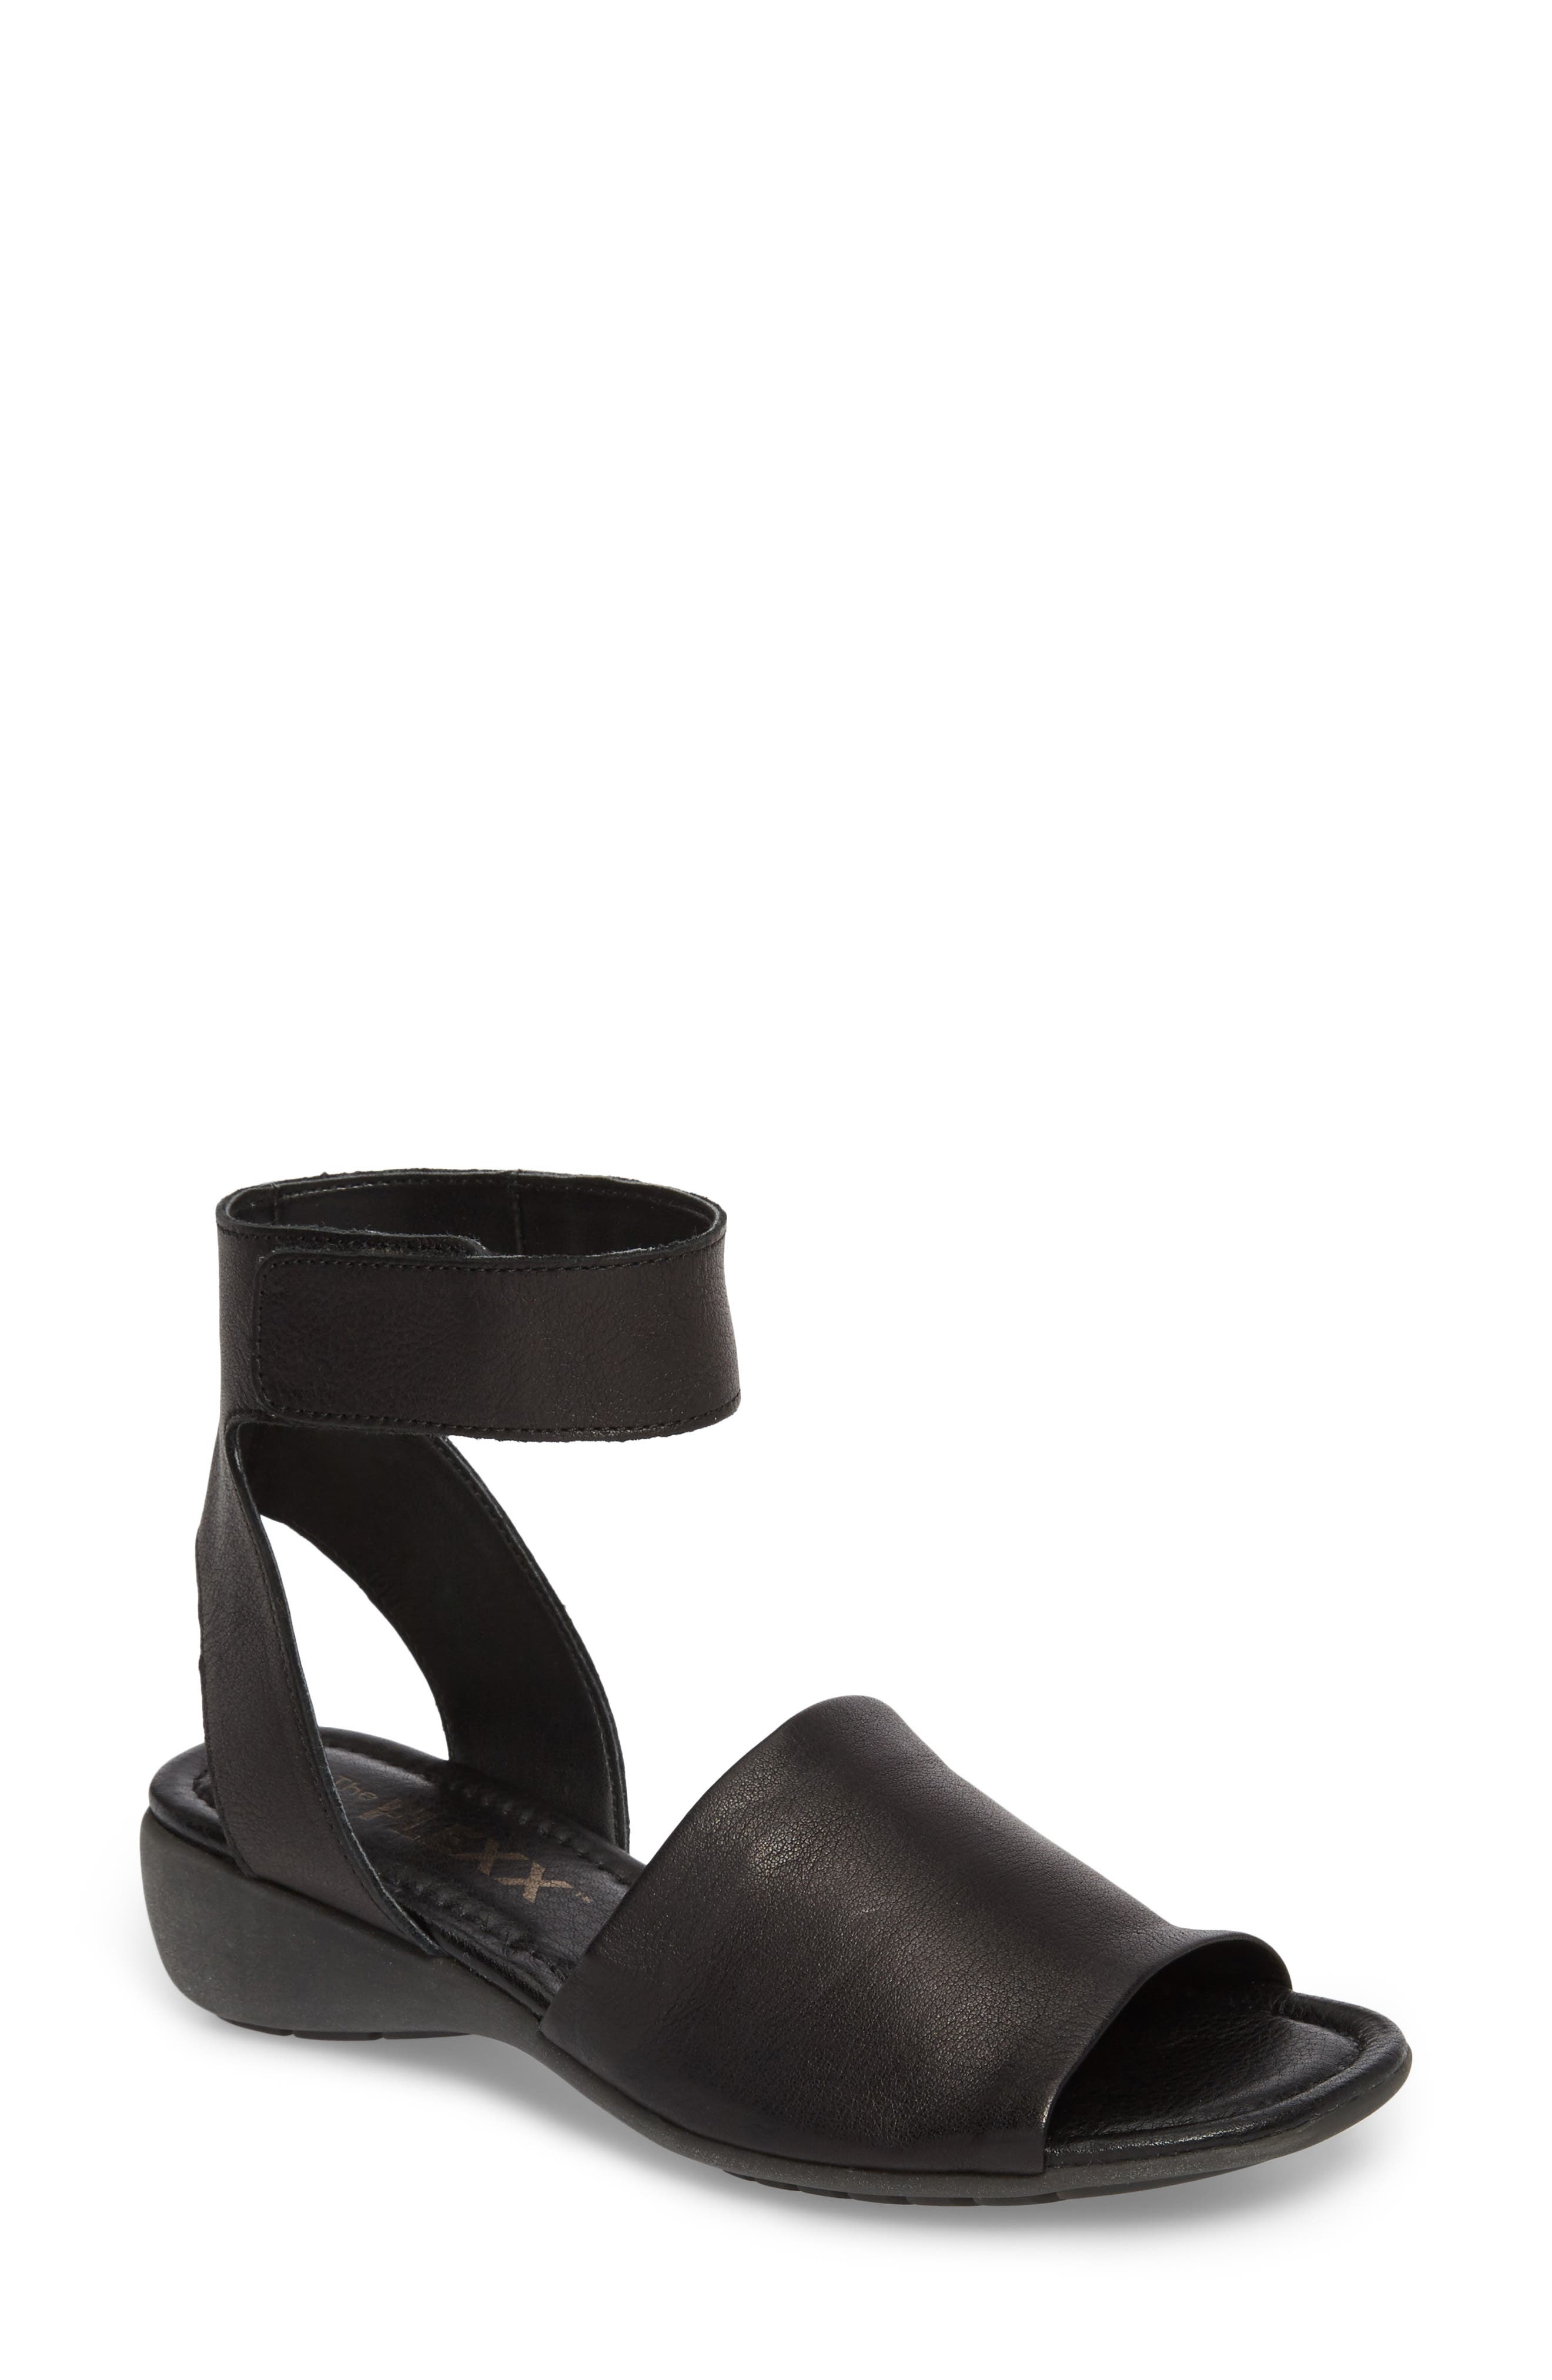 'Beglad' Leather Ankle Strap Sandal,                             Main thumbnail 1, color,                             BLACK VACHETTA LEATHER